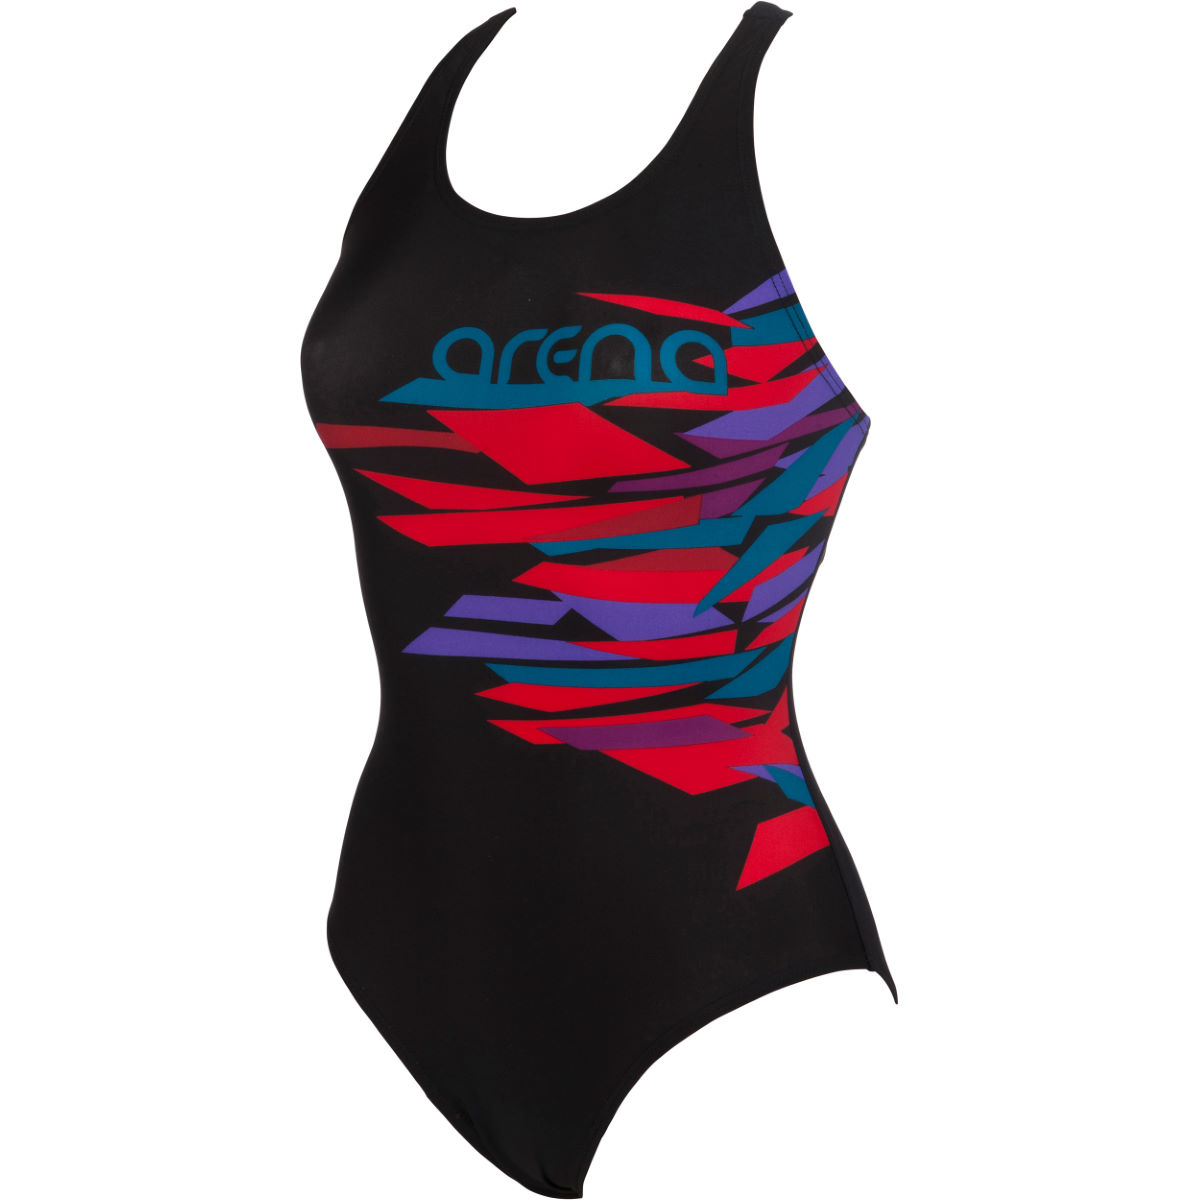 Arena Women's Glacier One Piece Swimsuit AW14